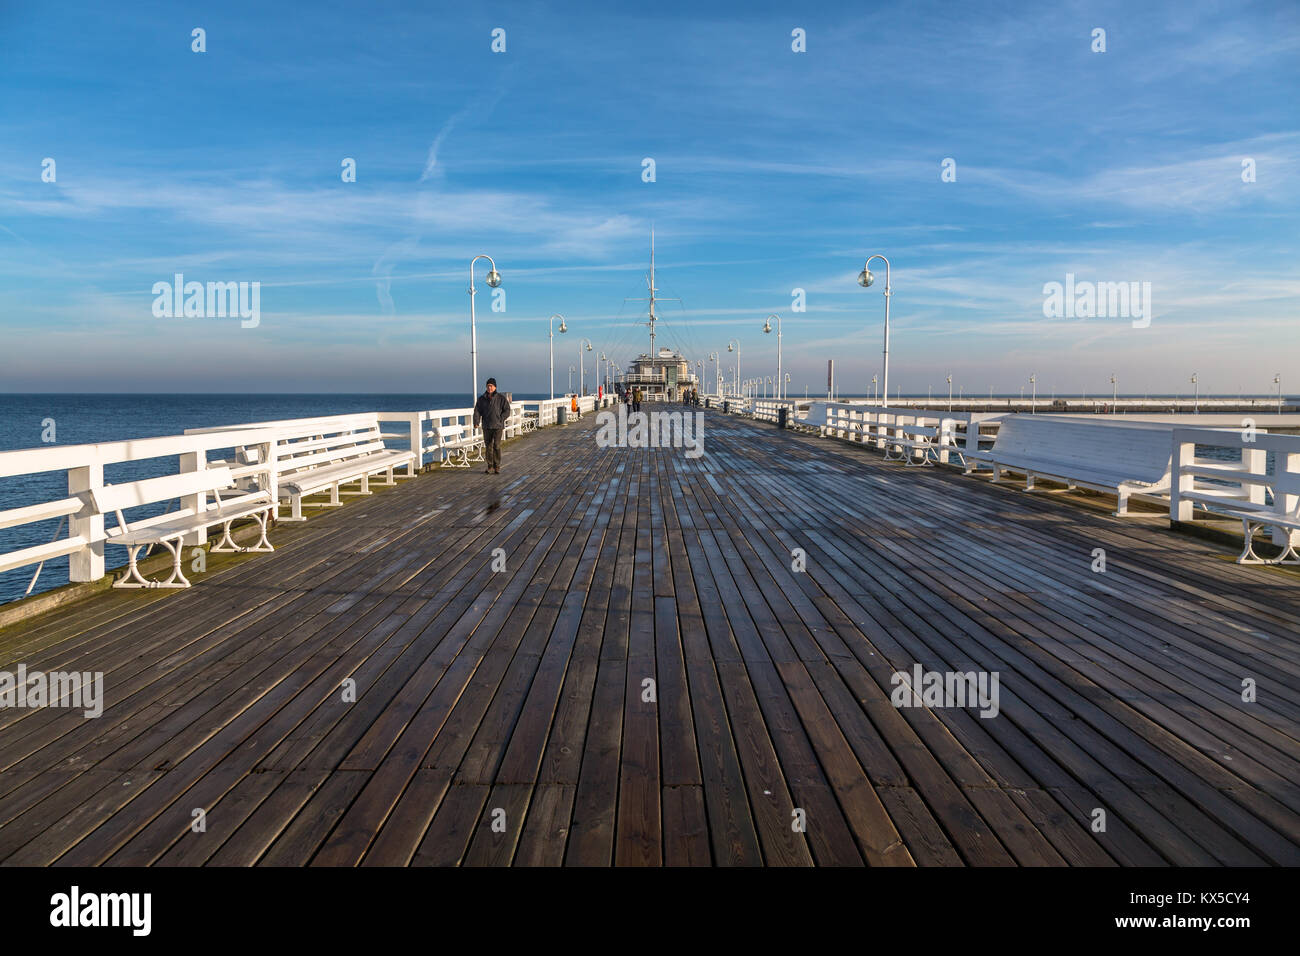 The pier in Sopot, Poland - Stock Image